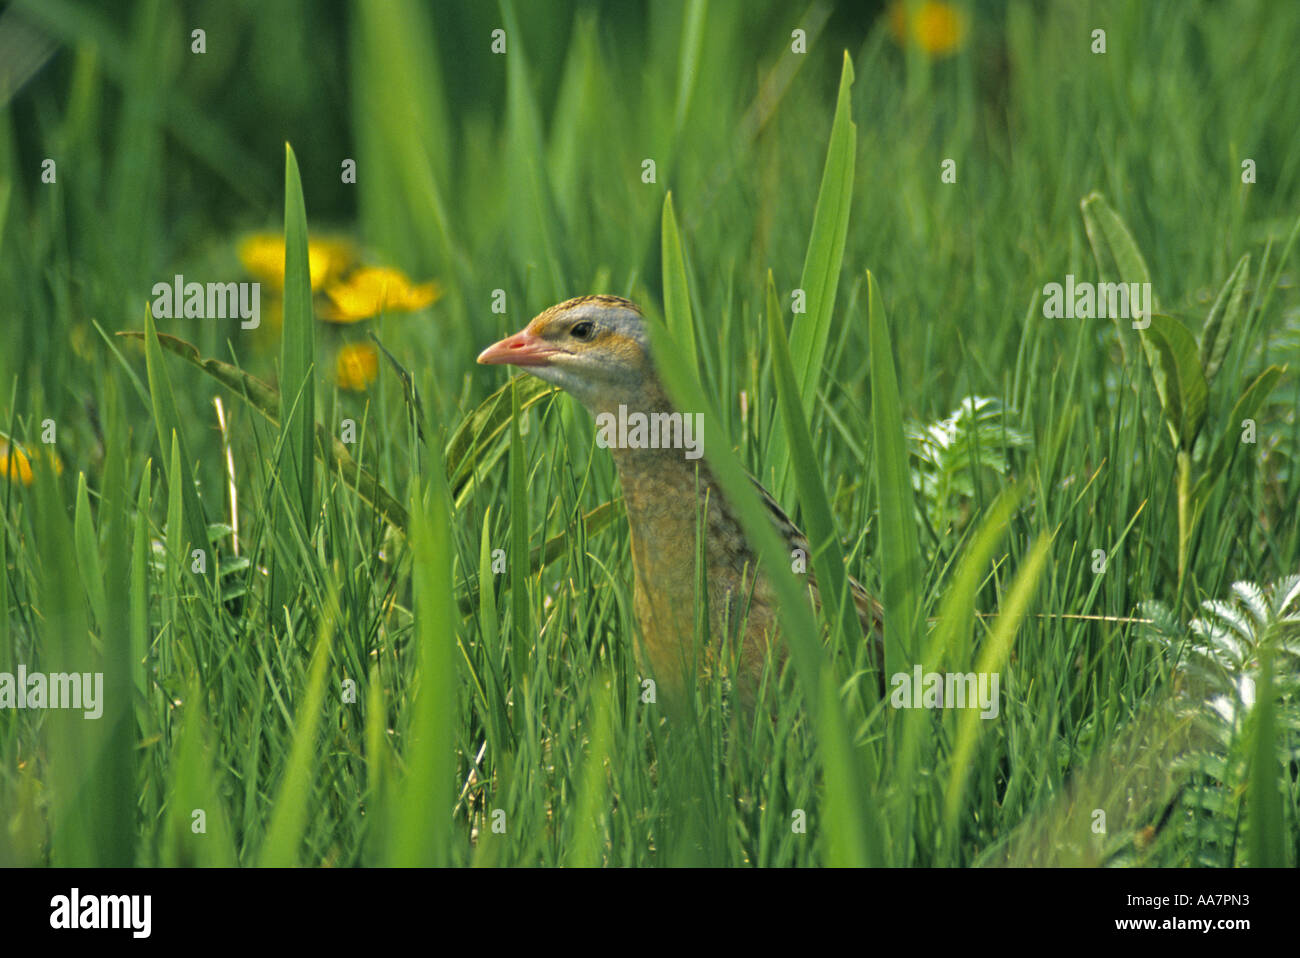 Corncrake Crex crex in iris bed Outer Hebrides June 2004 Stock Photo